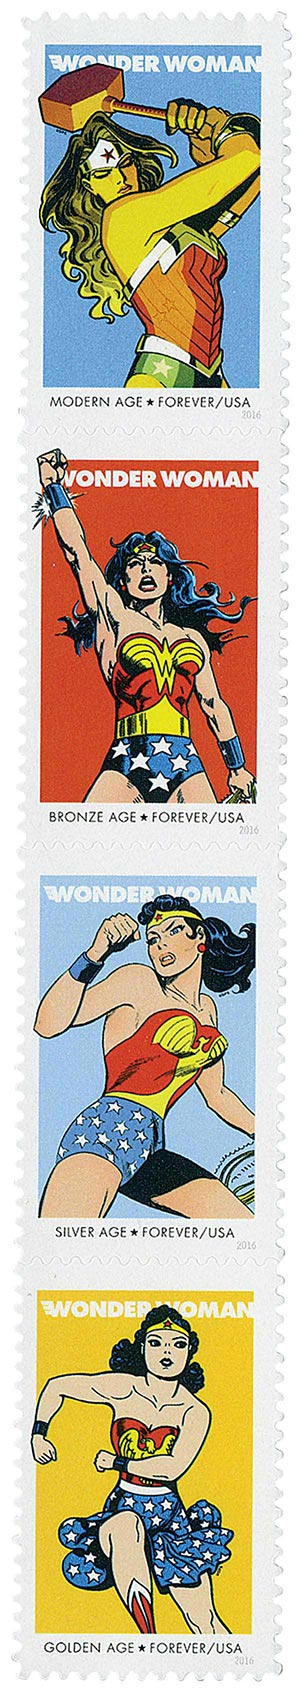 2016 First-Class Forever Stamp - Wonder Woman